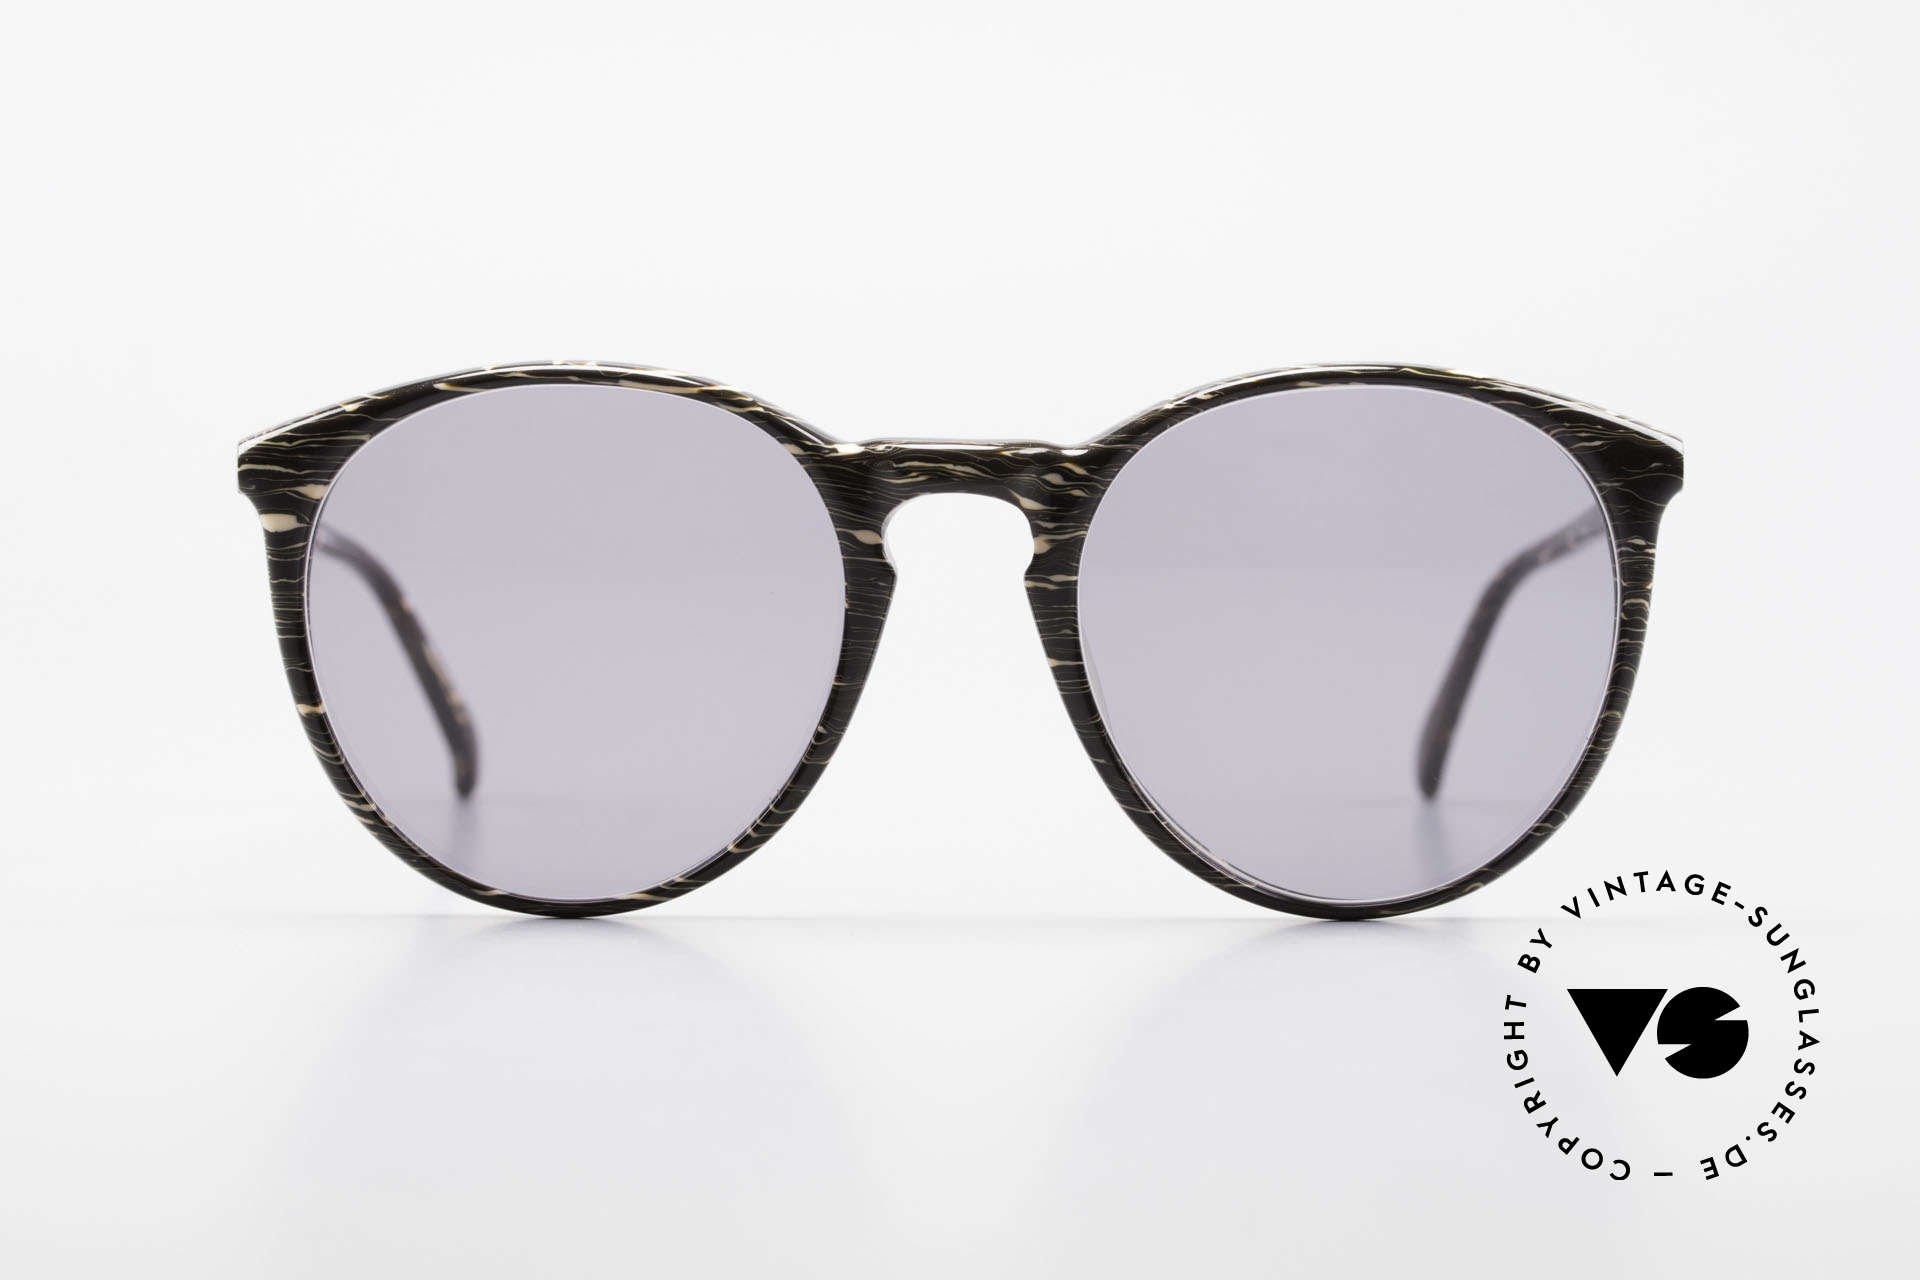 Alain Mikli 901 / 429 Brown Marbled Panto Frame, classic 'panto'-design with solid gray sun lenses, Made for Men and Women